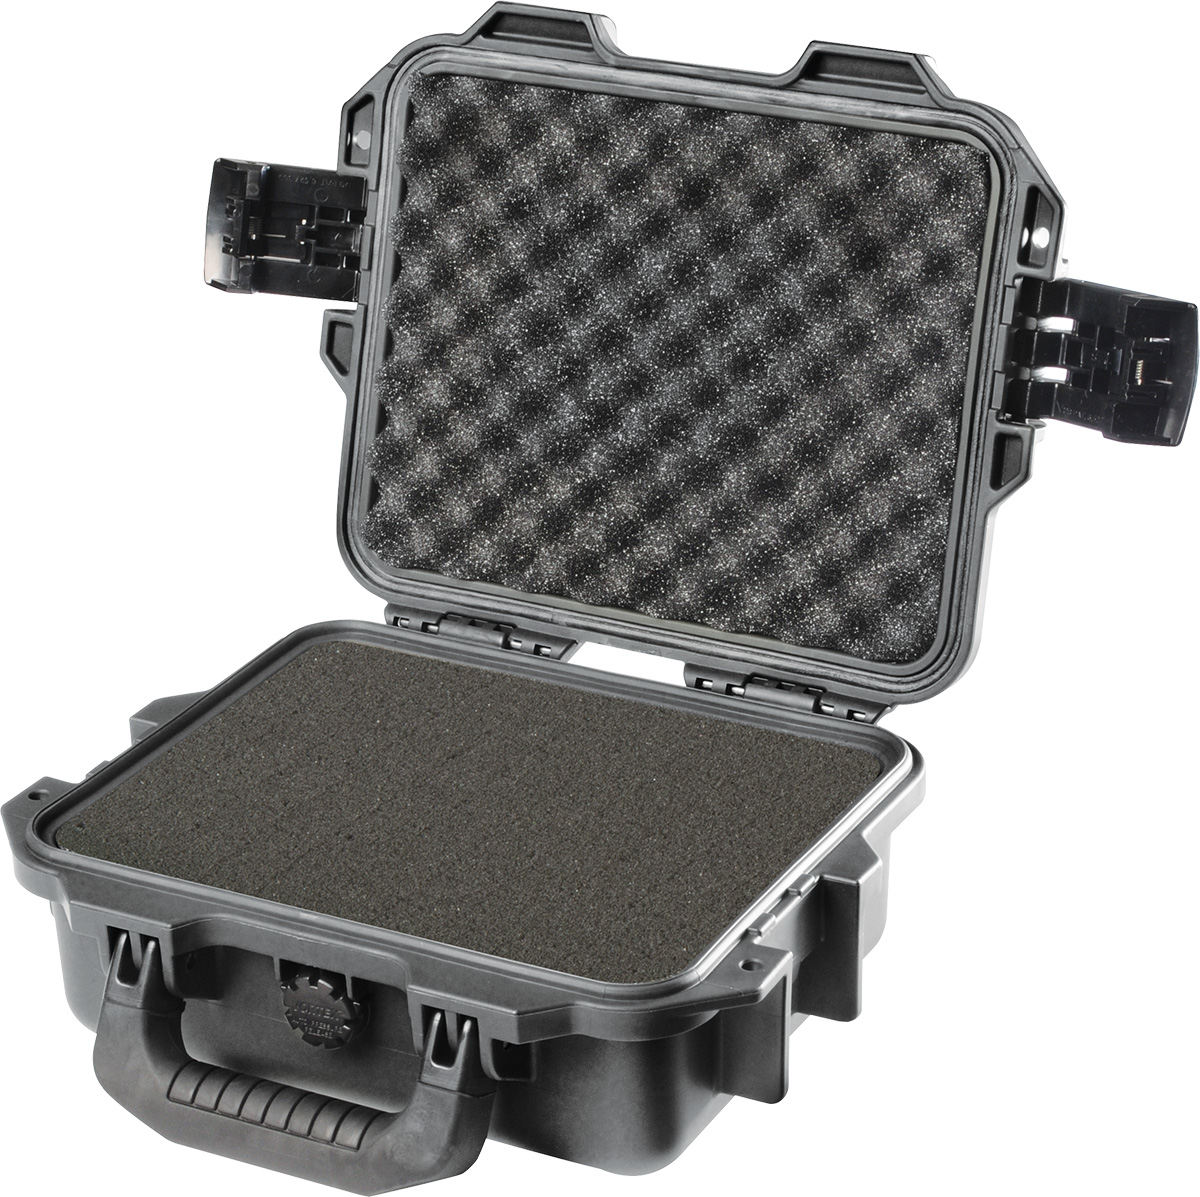 pelican im2050 foam weapon protection case